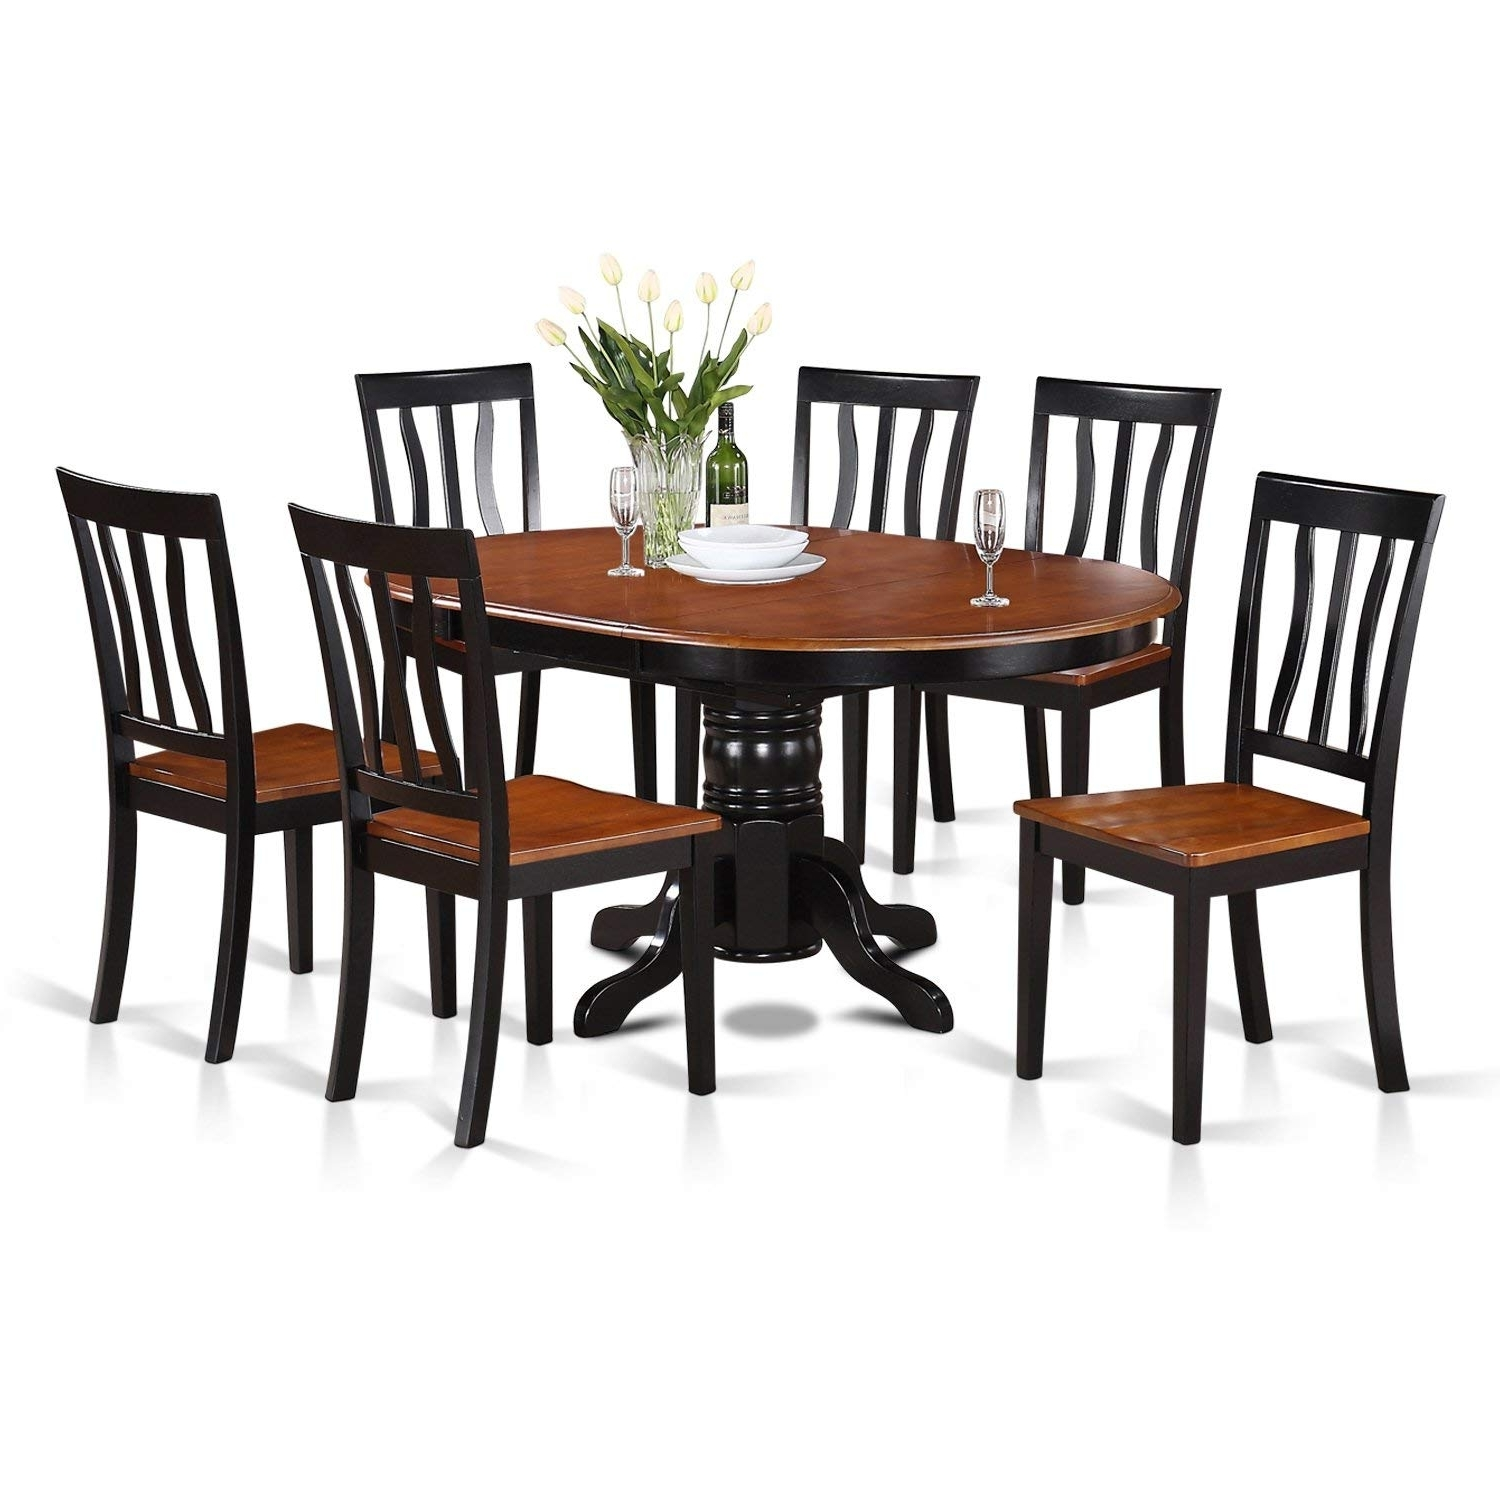 Cheap 6 Seater Dining Tables And Chairs Within 2017 Amazon: East West Furniture Avat7 Blk W 7 Piece Dining Table Set (View 7 of 25)